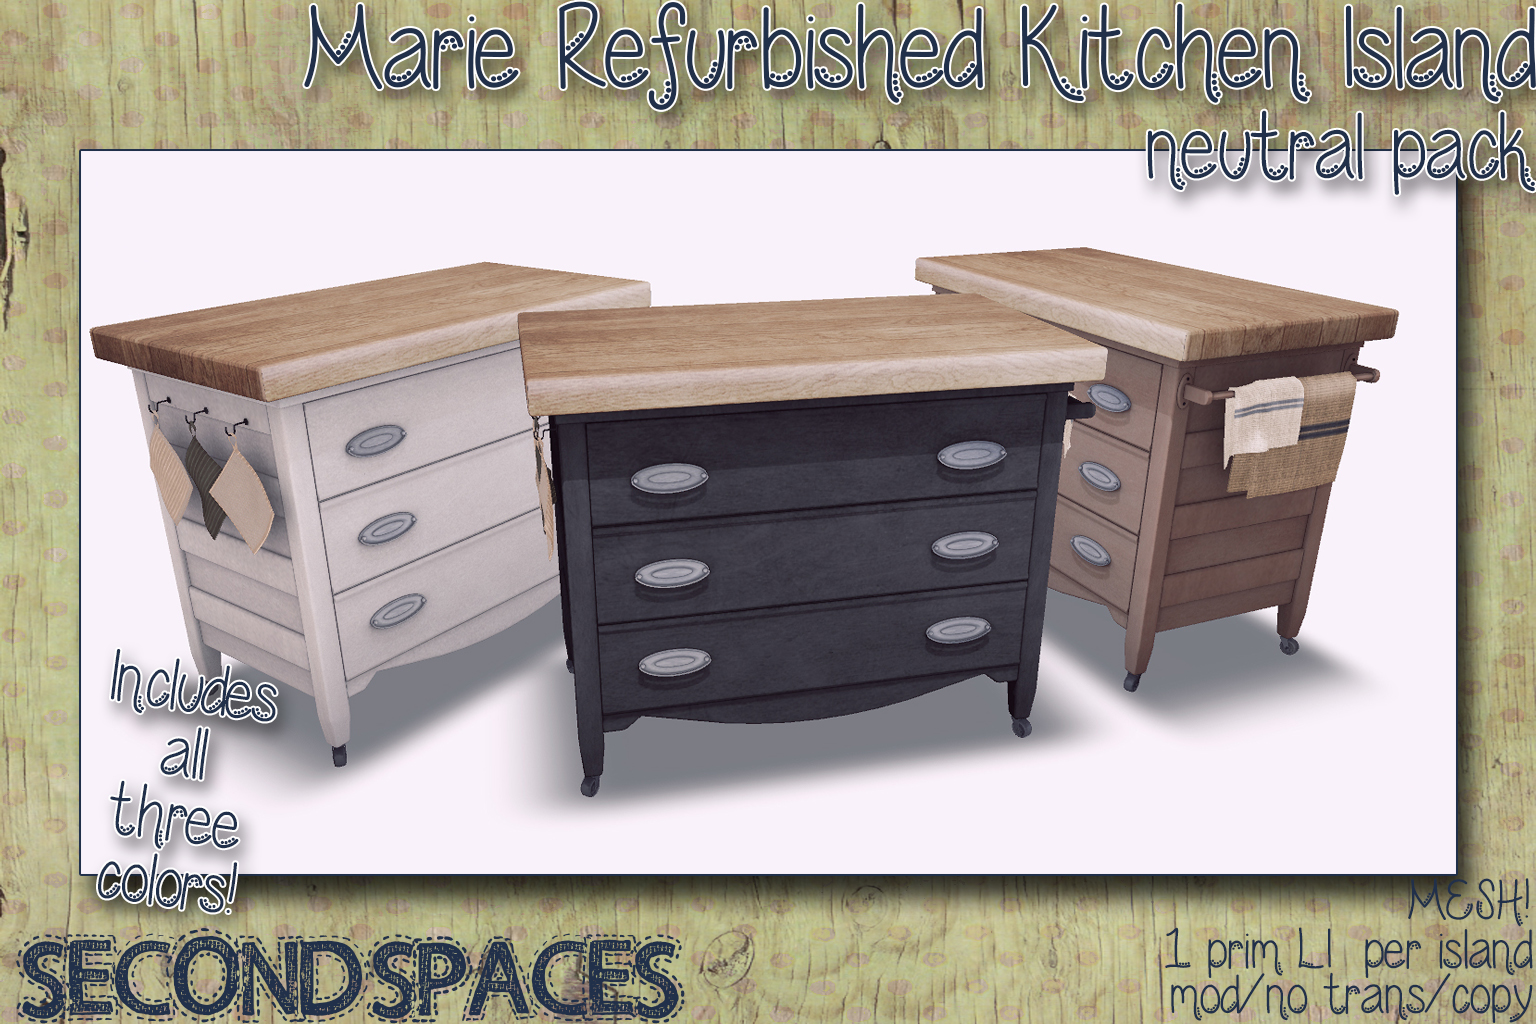 marie refurb kitch island_neutral_vendor.jpg